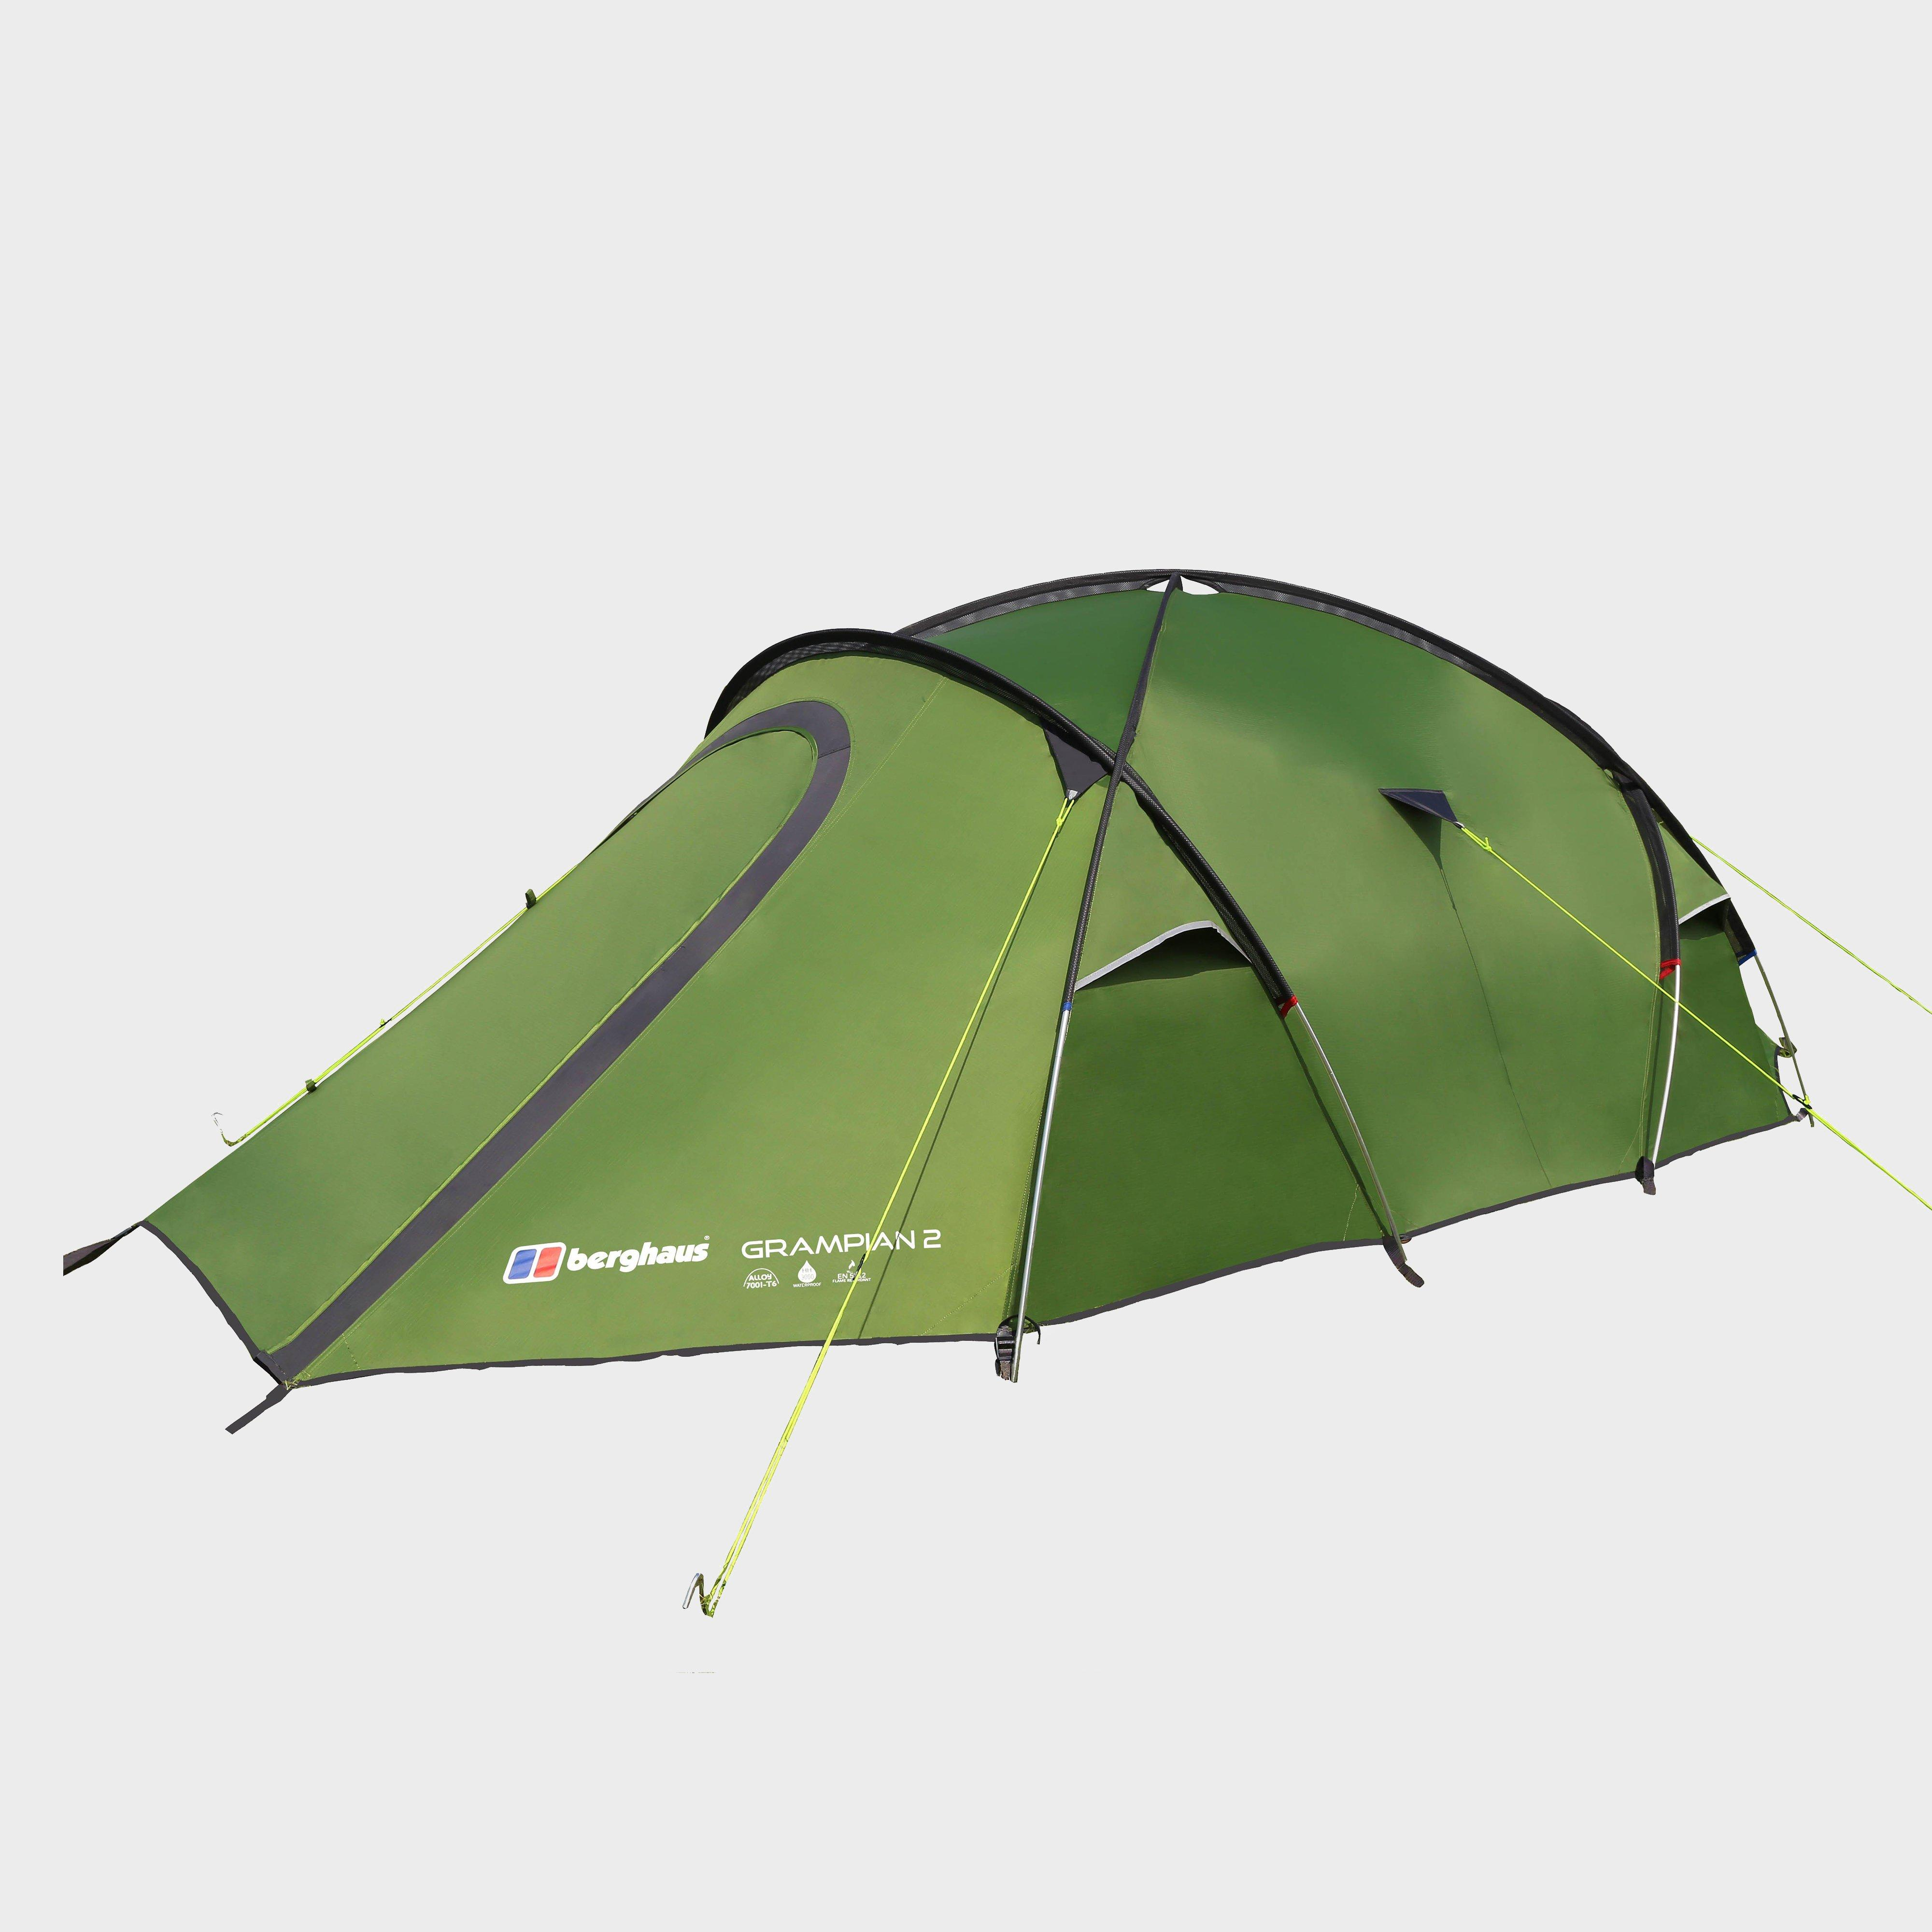 Two Person Tent : Berghaus grampian person tent